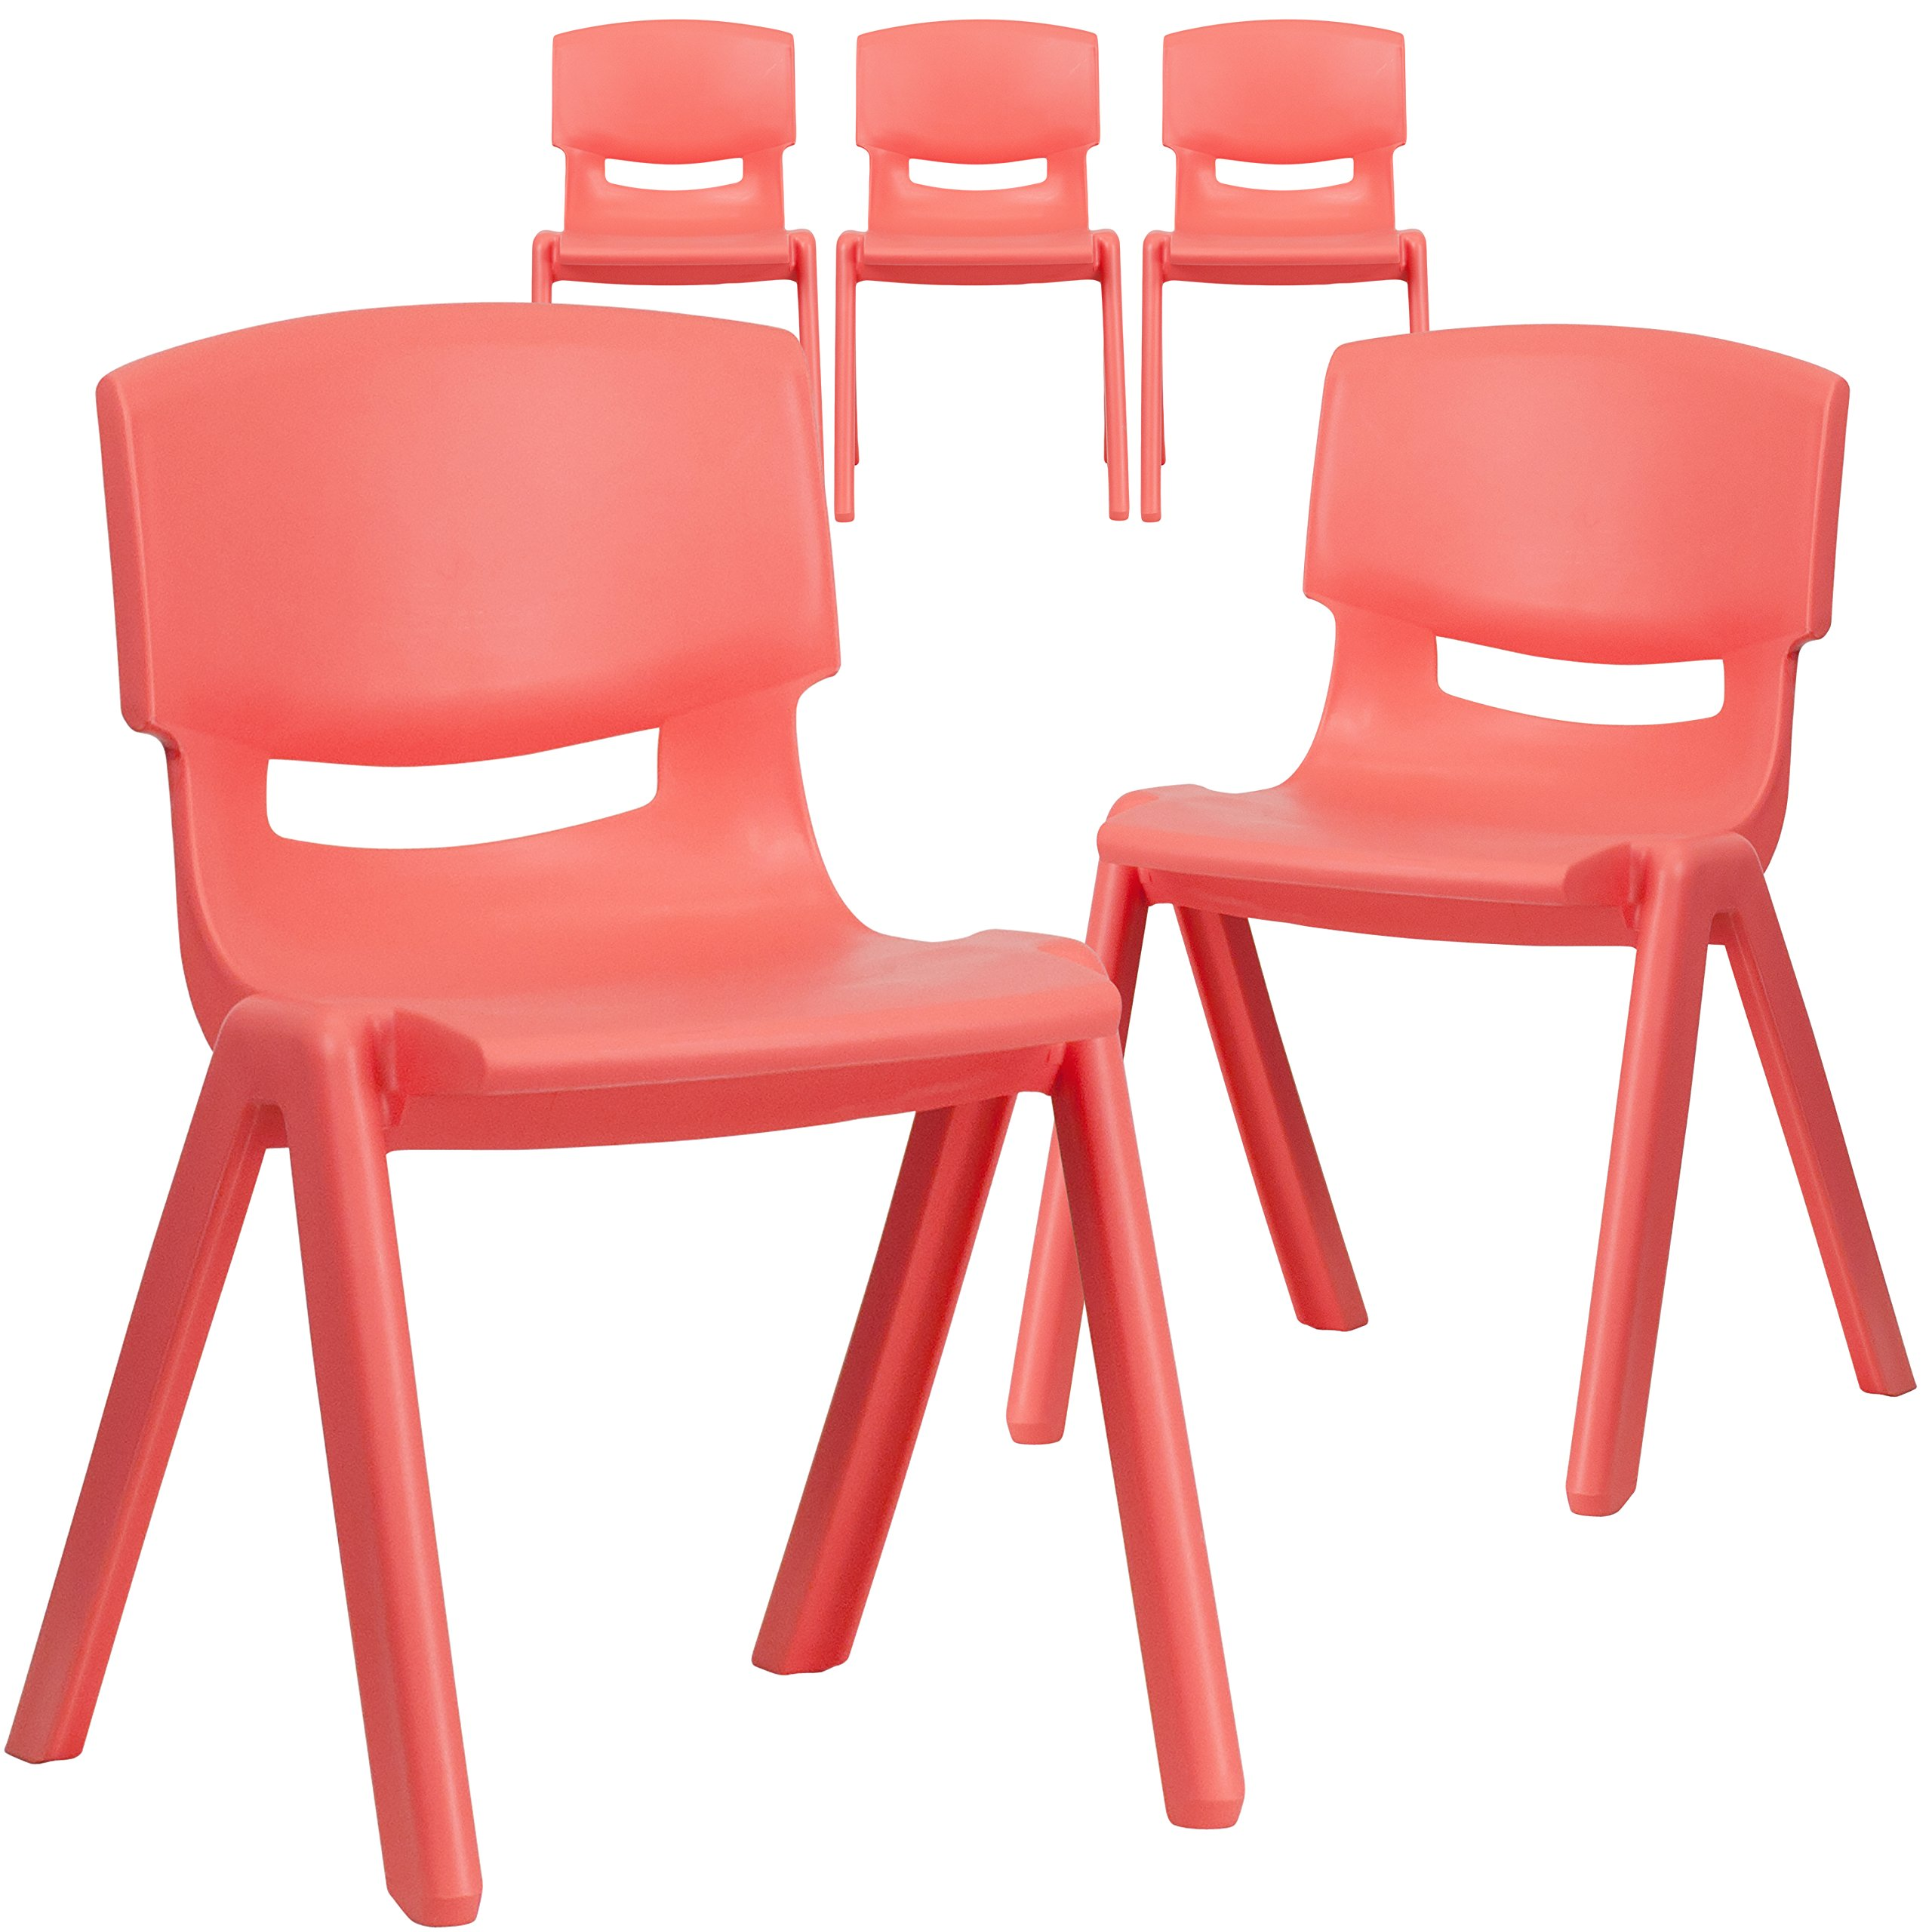 Flash Furniture 5 Pk. Red Plastic Stackable School Chair with 13.25'' Seat Height